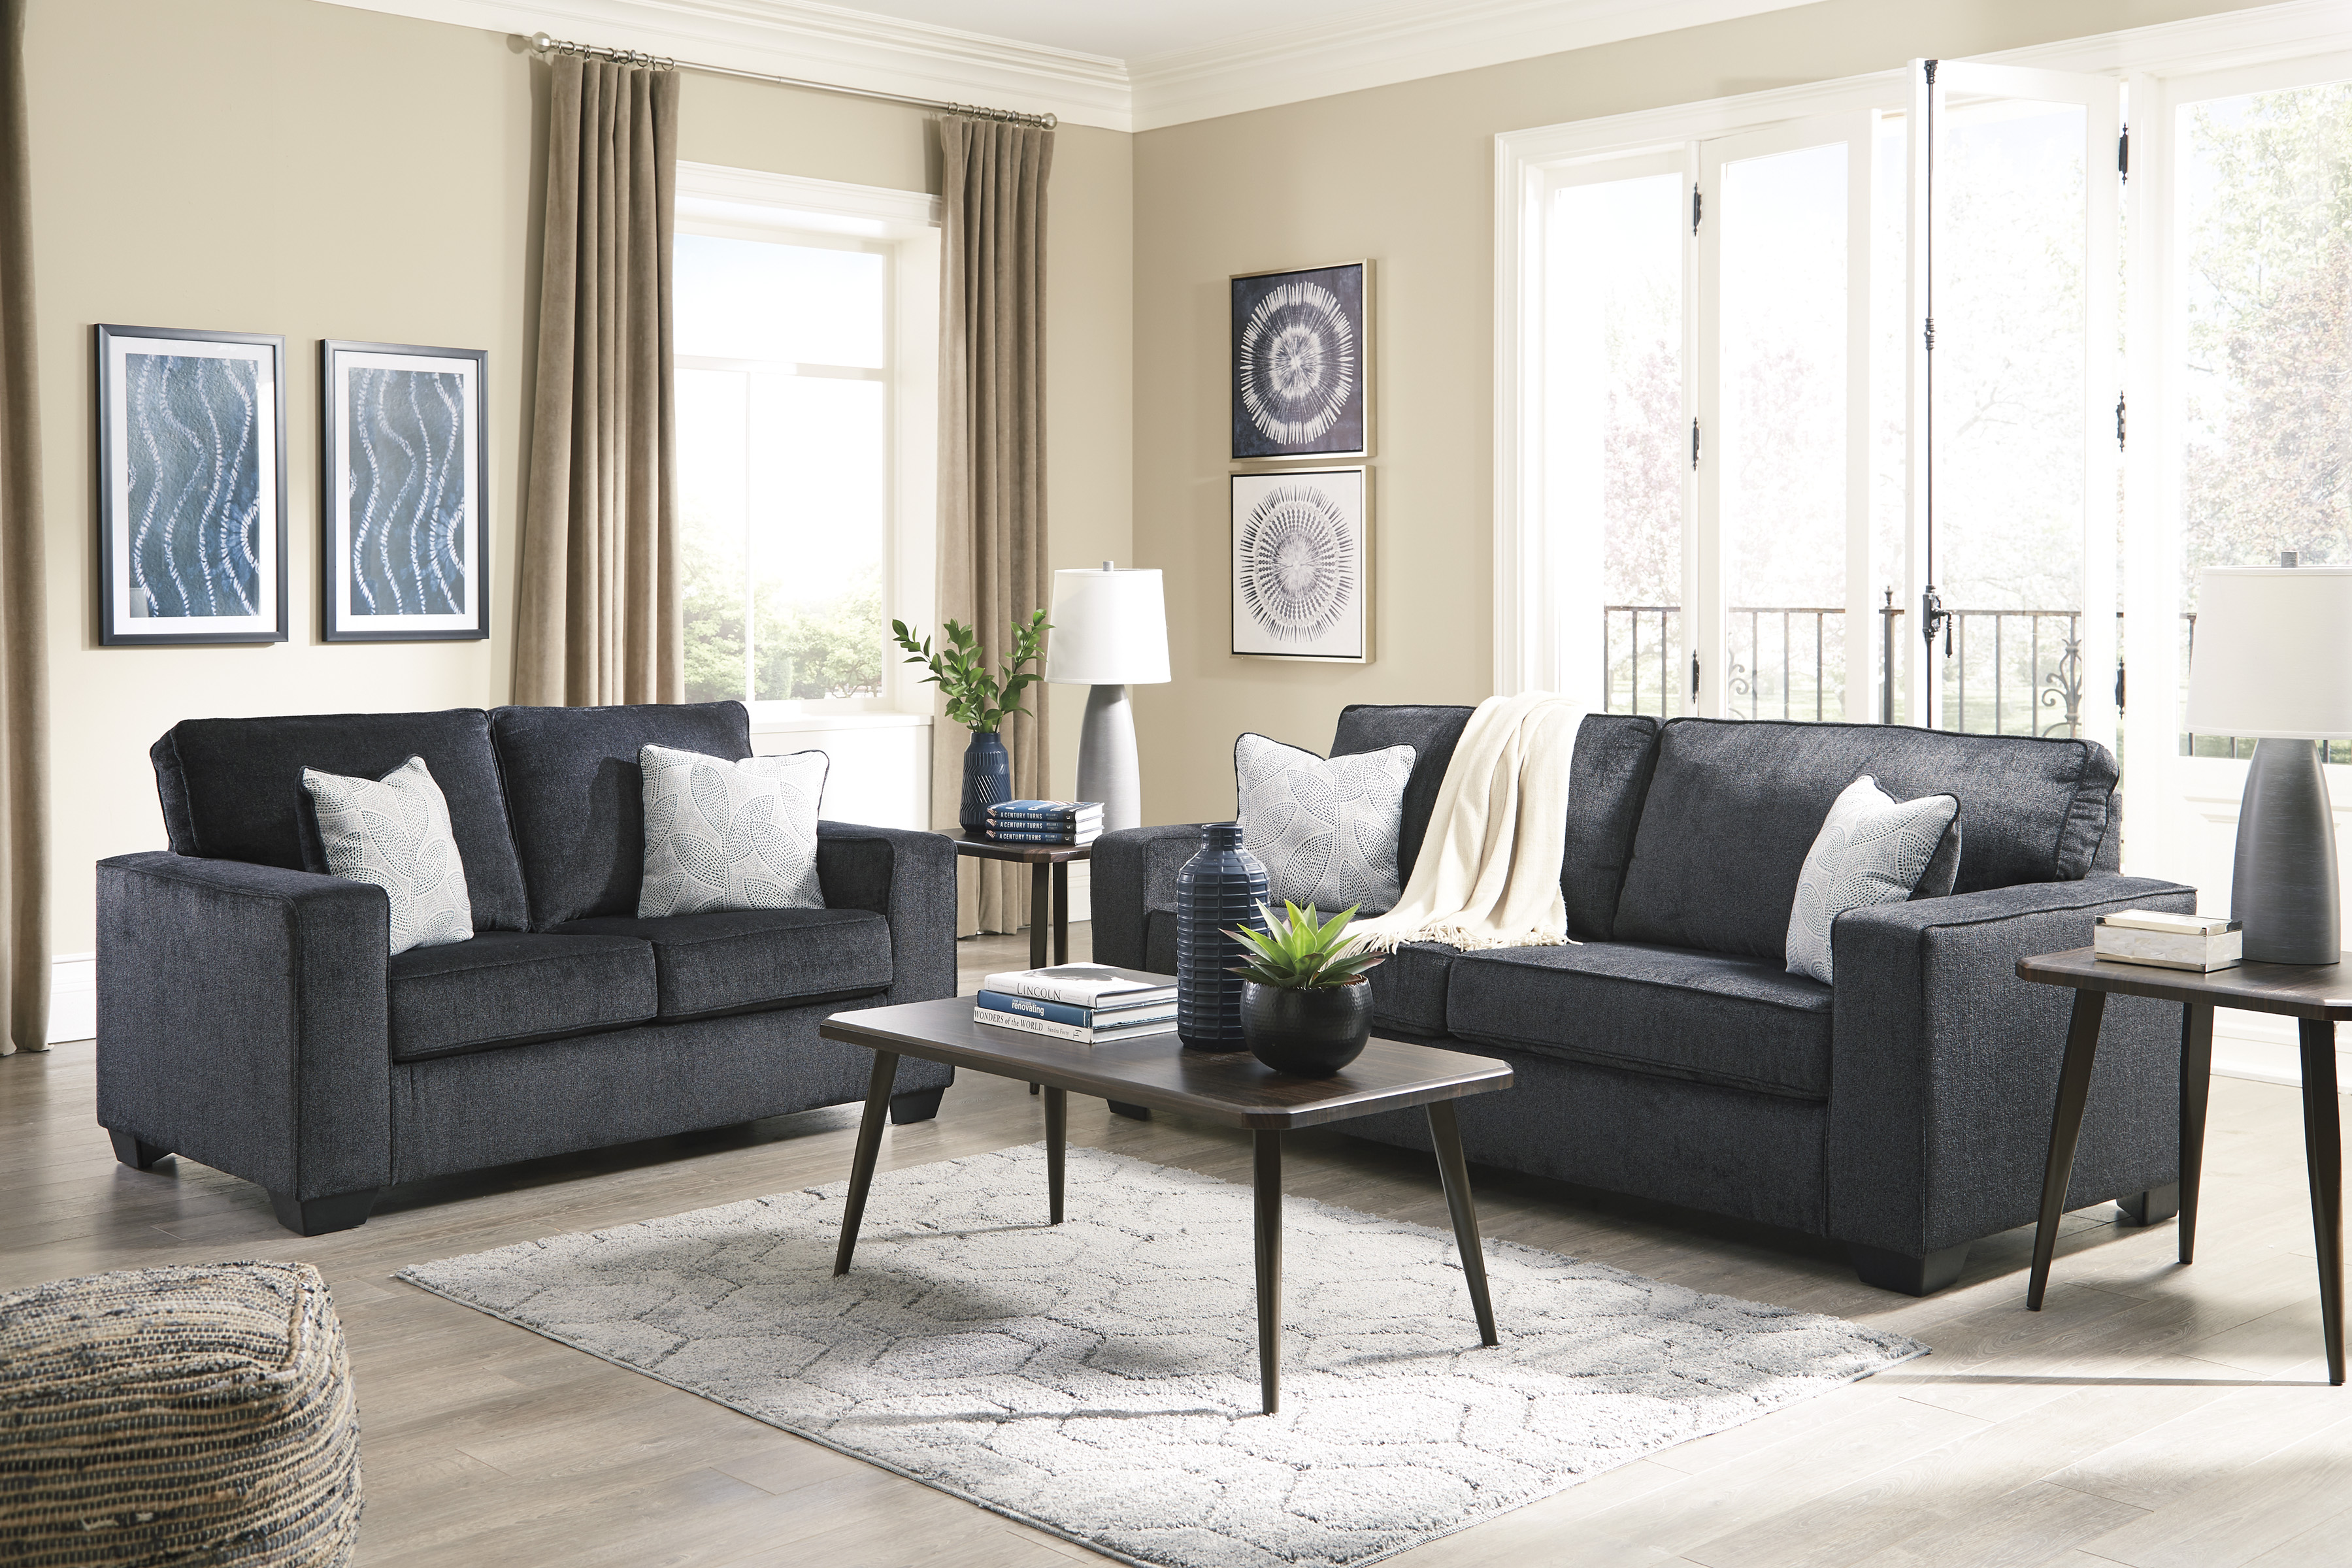 Altari Living Room All American Furniture Buy 4 Less Open To Public